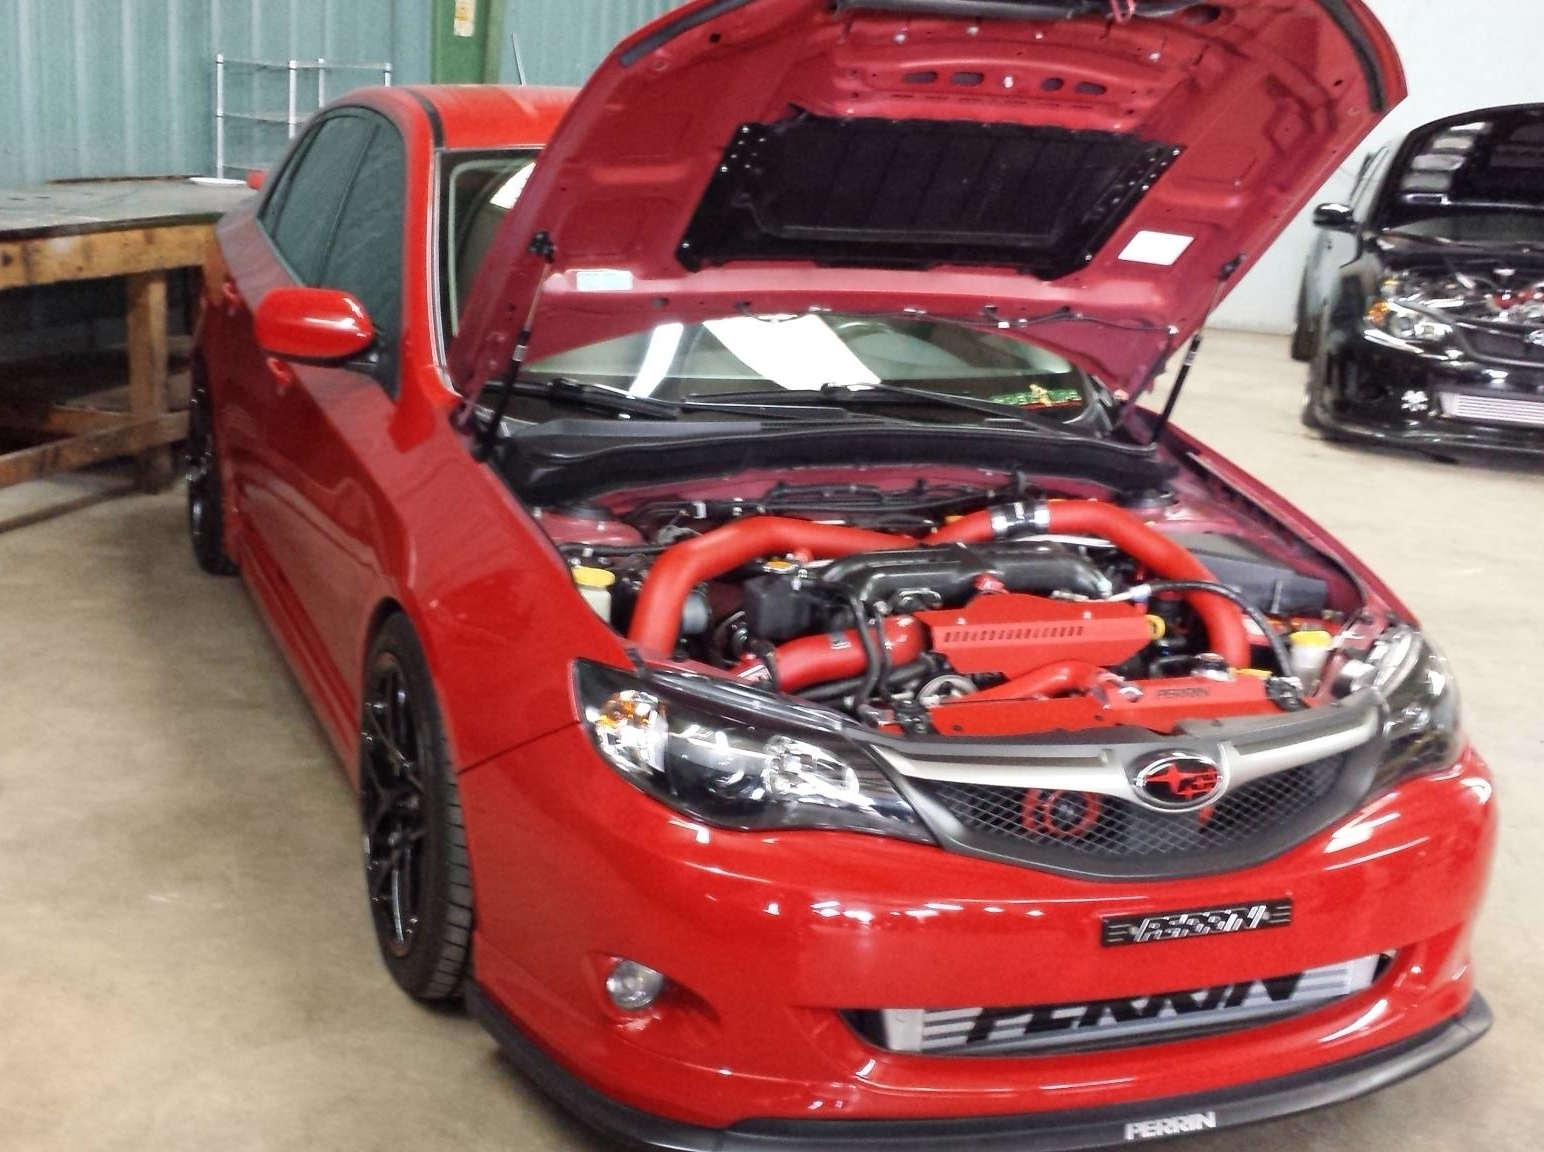 2009 Red Subaru Impreza Wrx Pictures Mods Upgrades